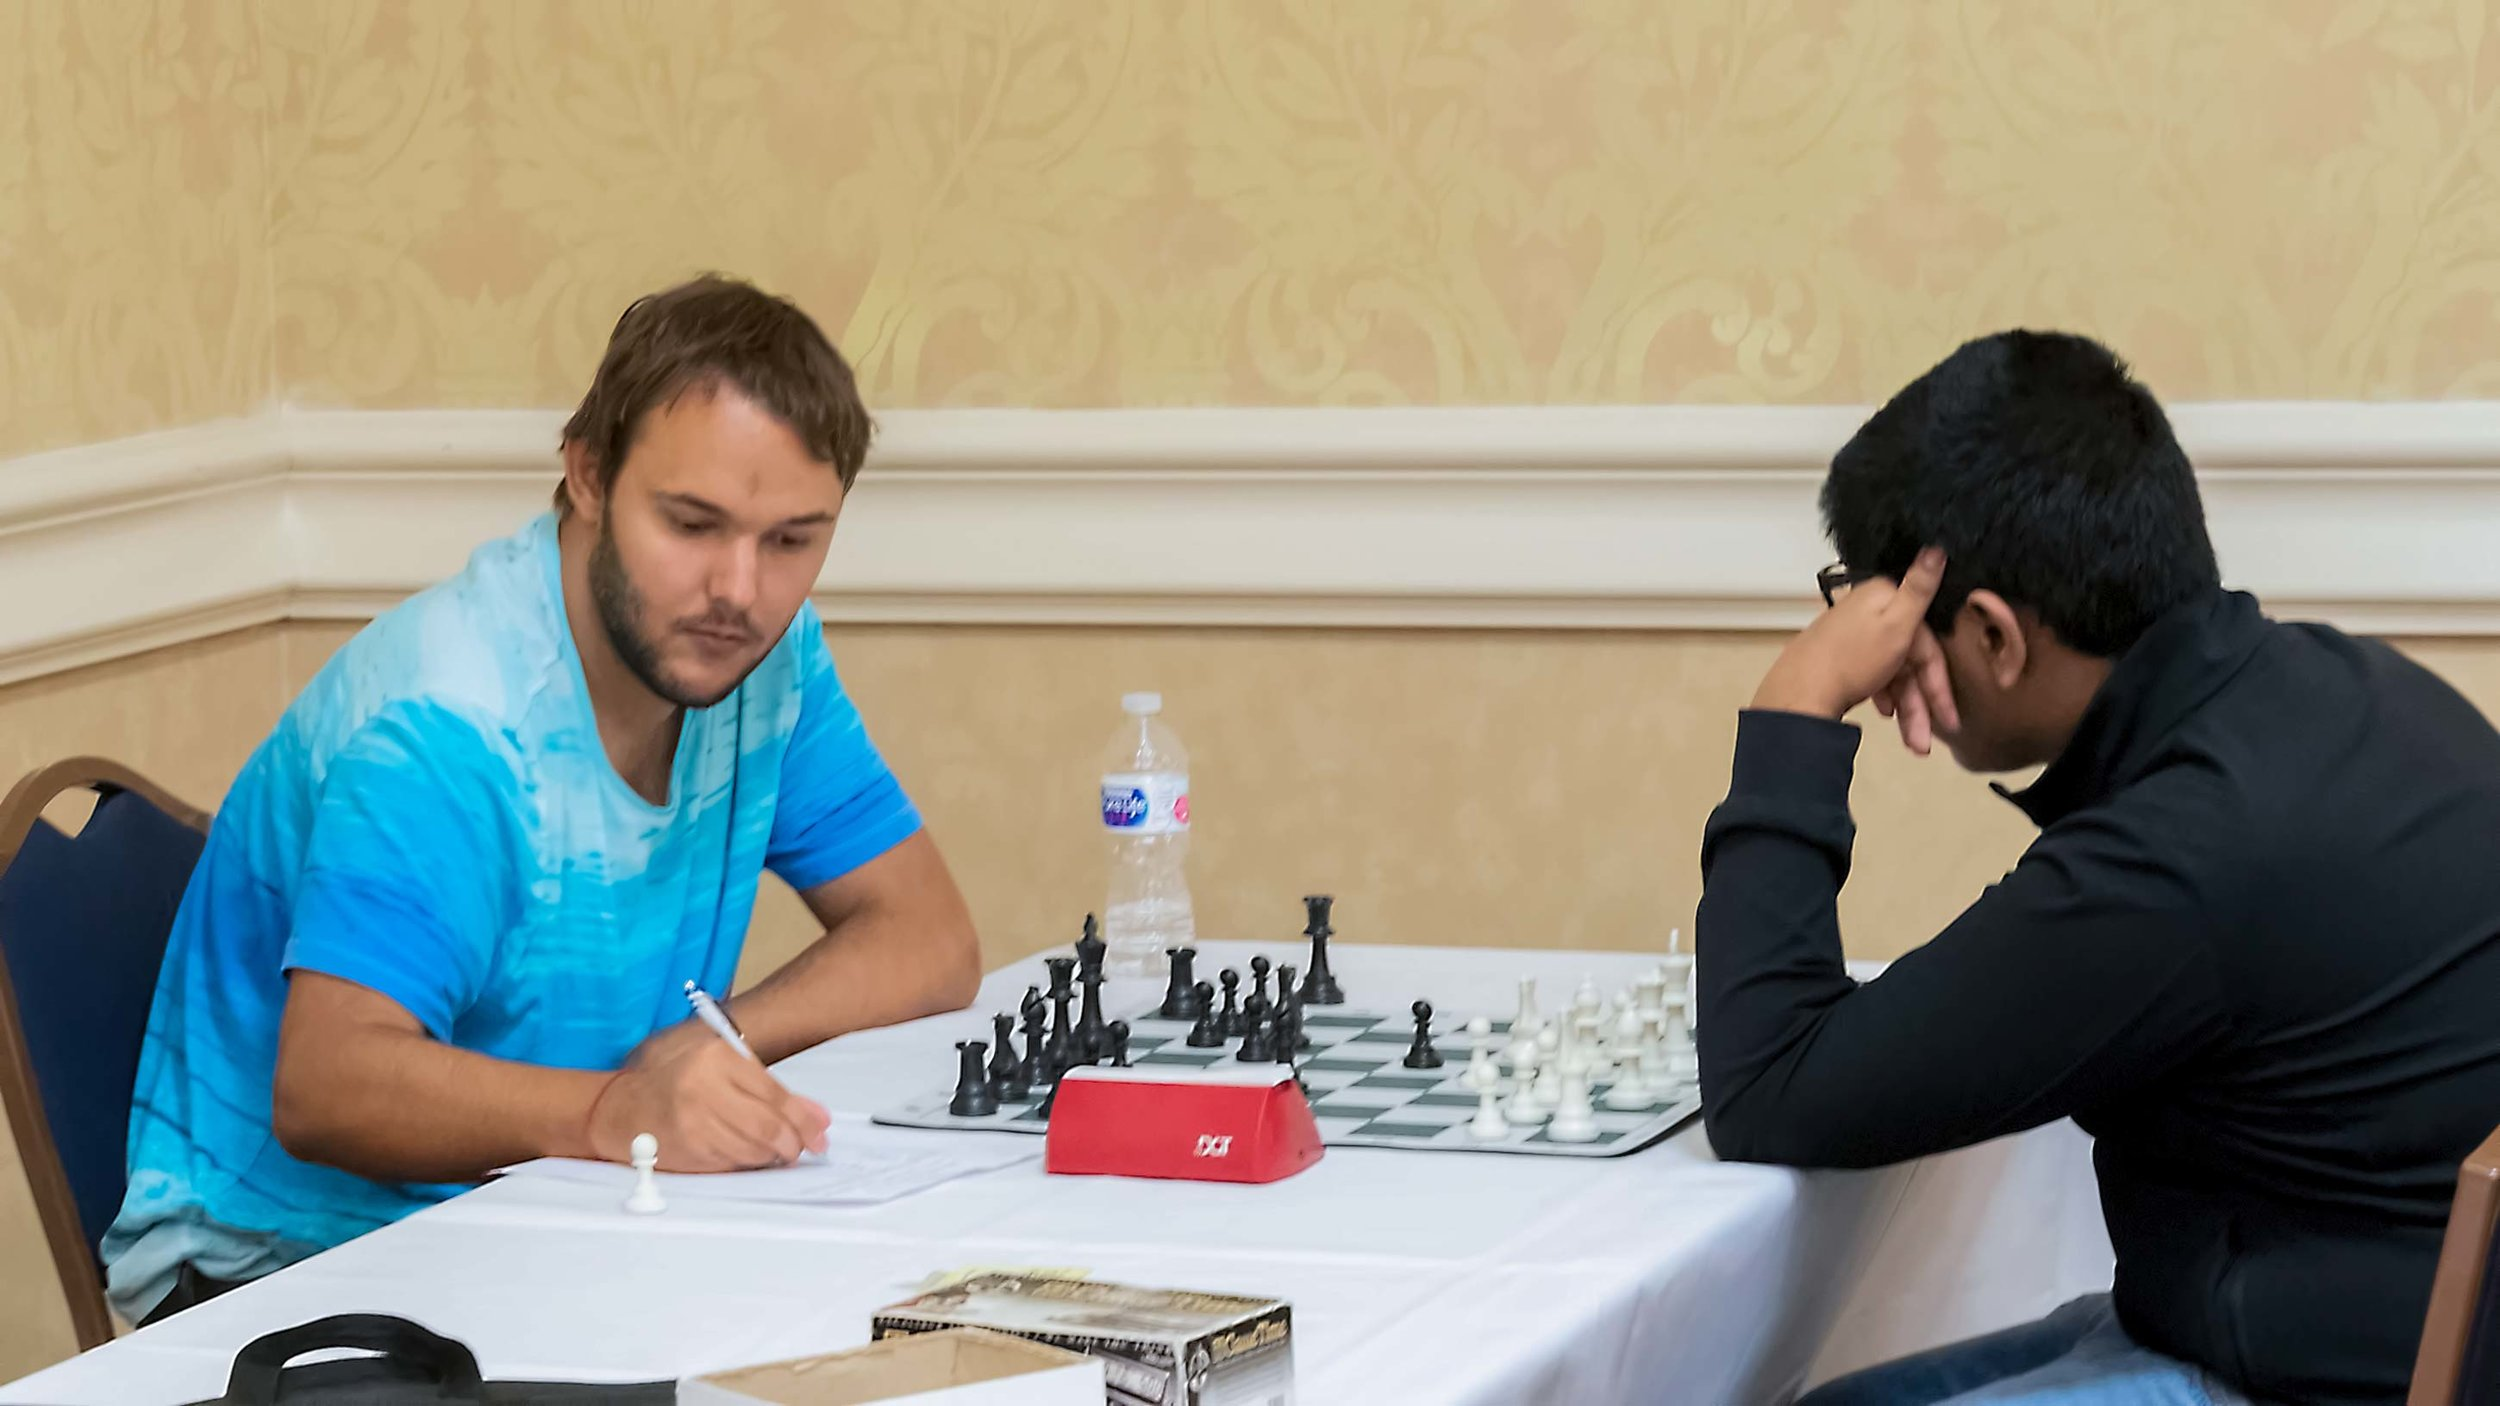 Final Round, Board 1: Martin Hansen (2221) (L) vs Abhimanyu Banerjee (2174) (R), where Martin won and tied for 1st place in the Premier section.